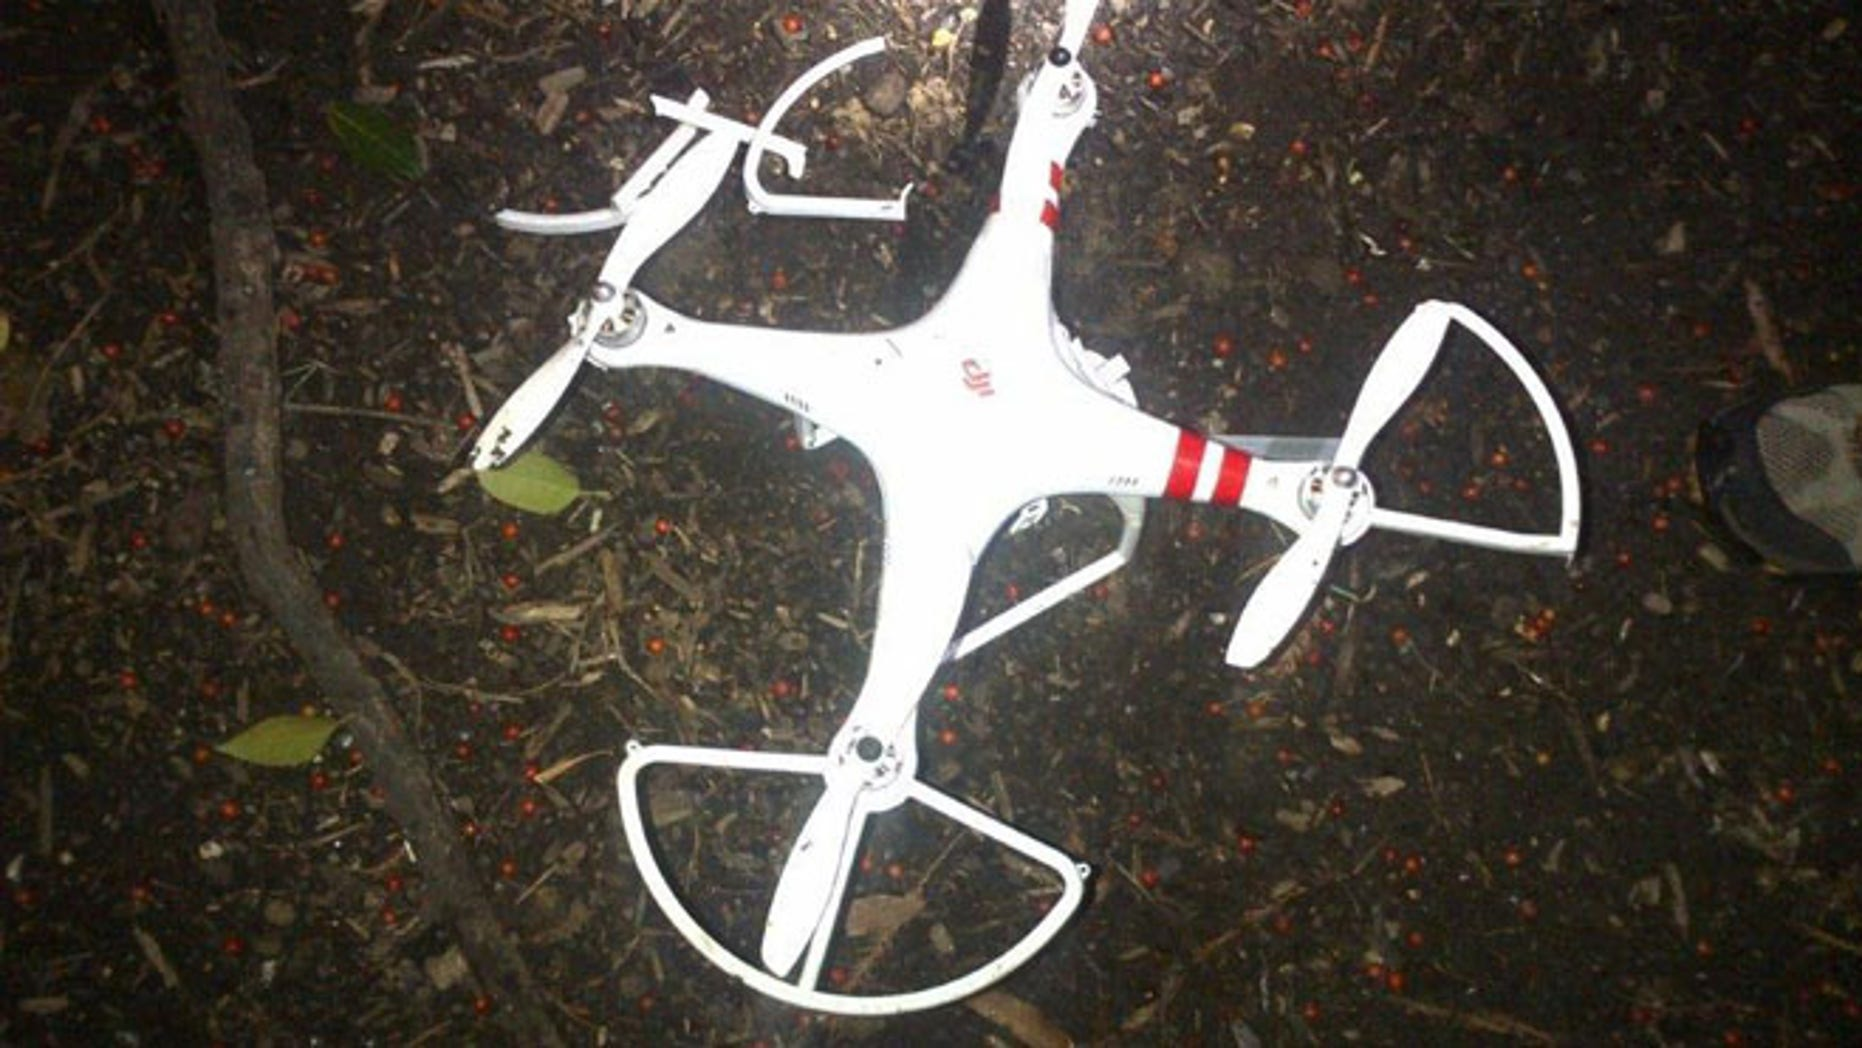 Shown here is a picture of the drone that crashed on the White House grounds in the early morning hours on Jan. 26.